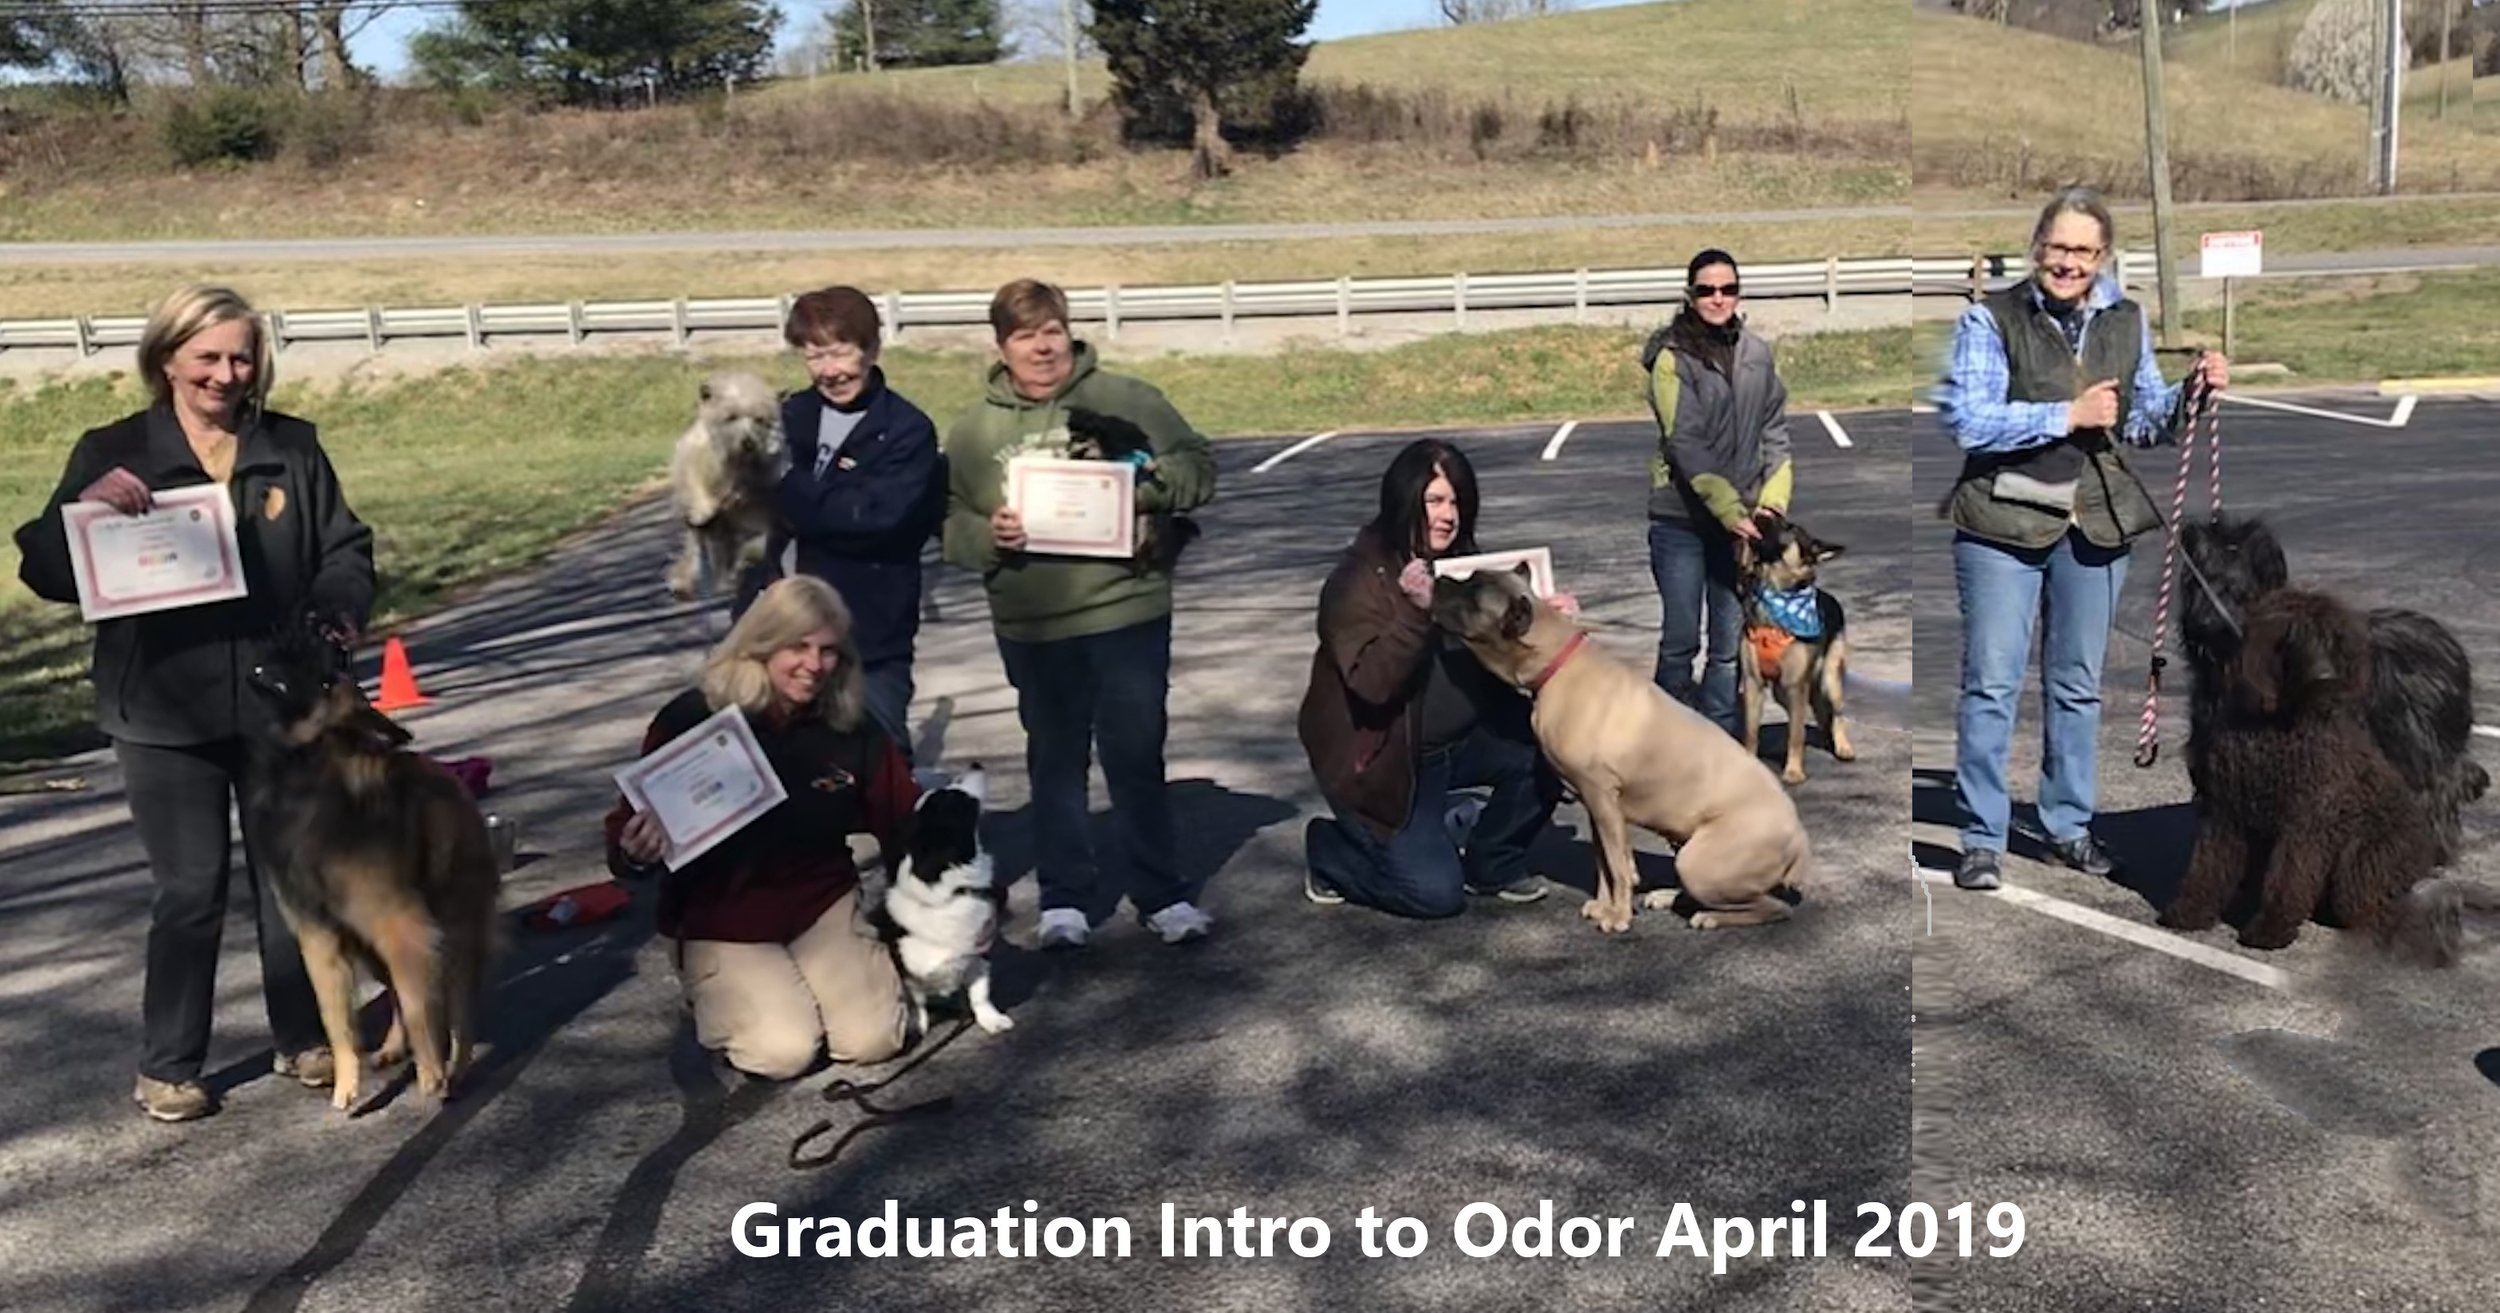 Intro to Odor Graduation 20190327.jpg